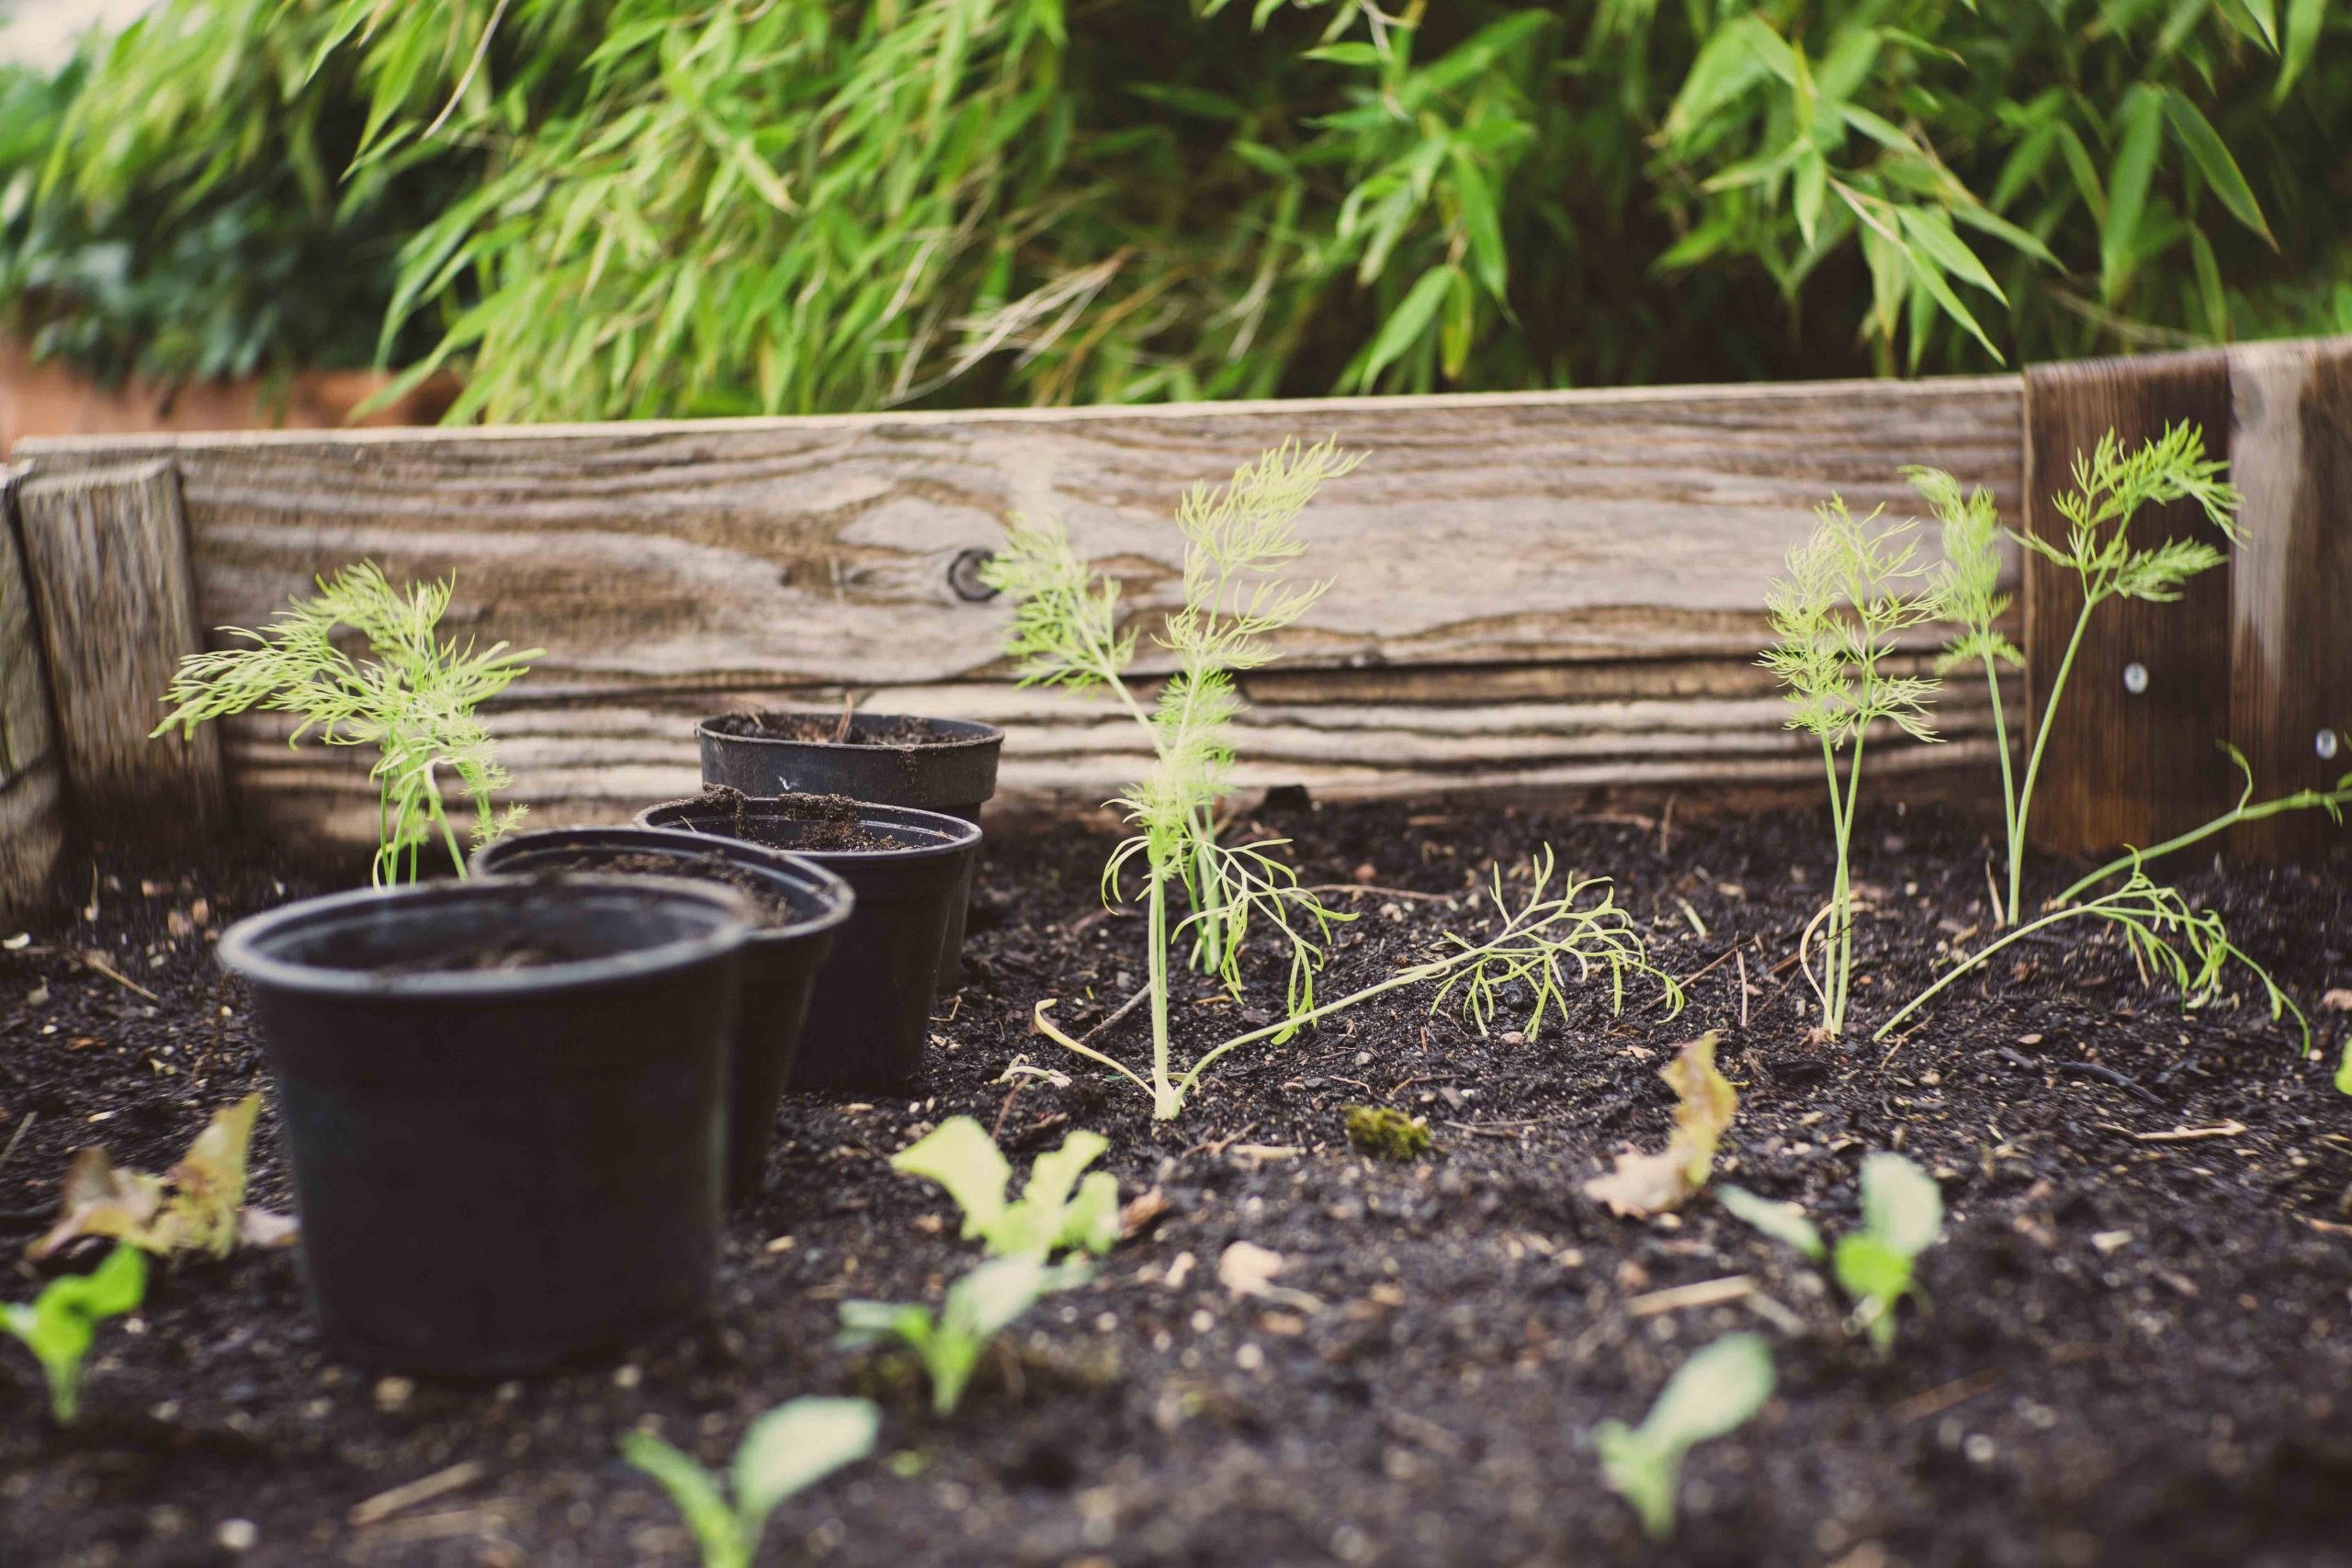 carrot plants growing in raised bed